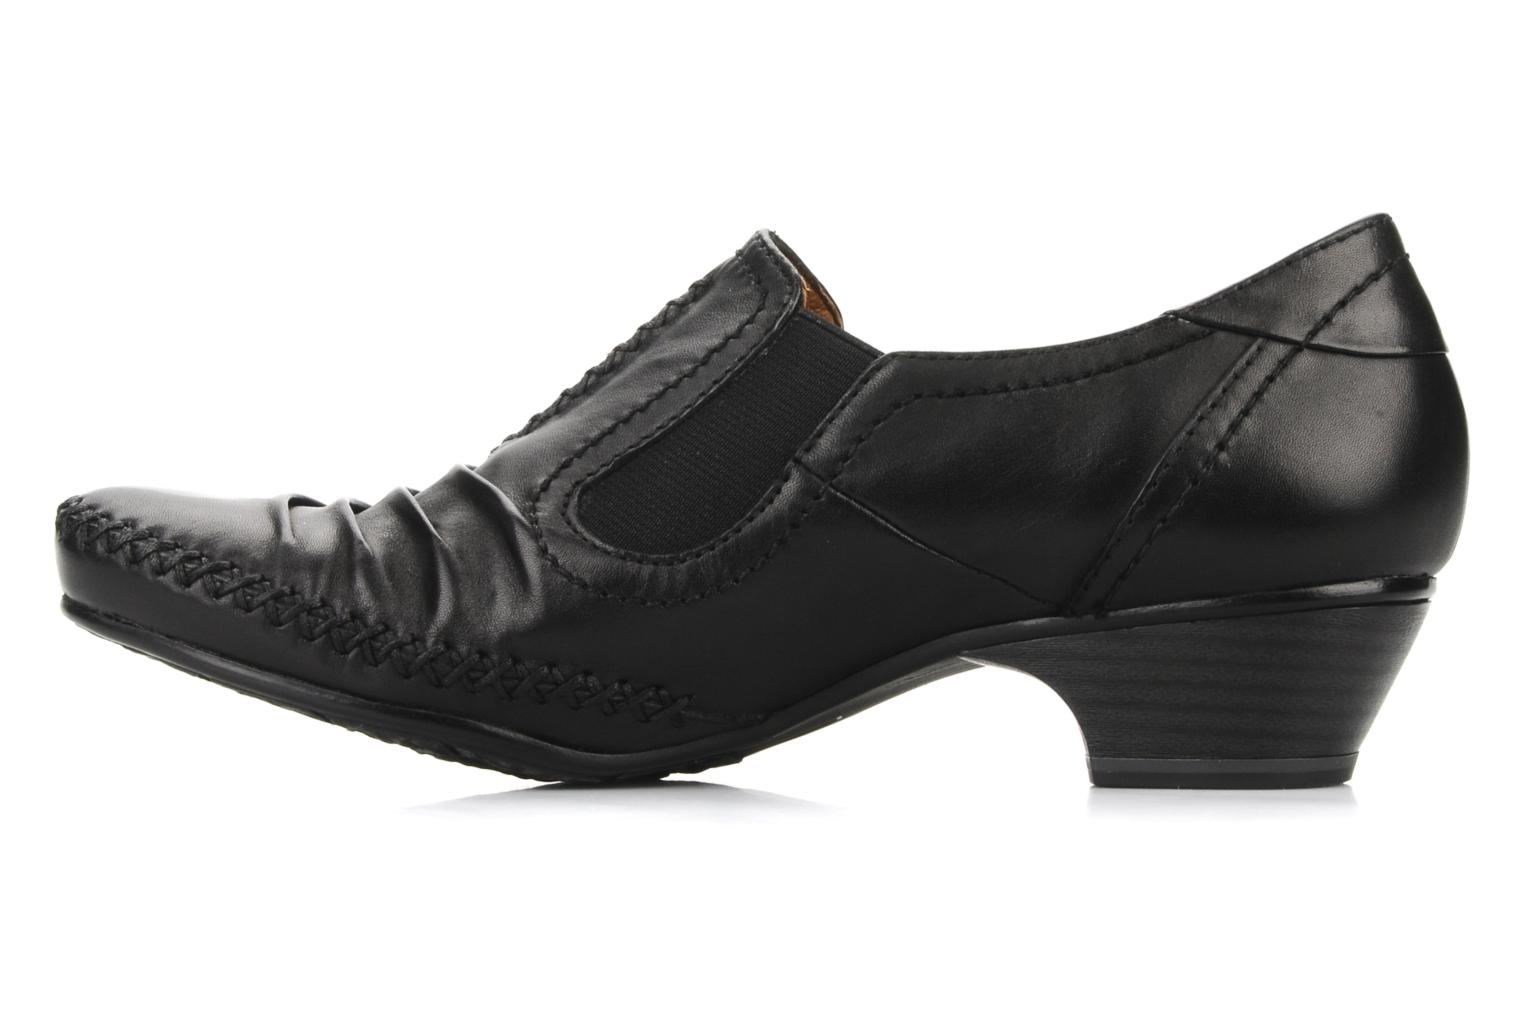 Cathy Black leather